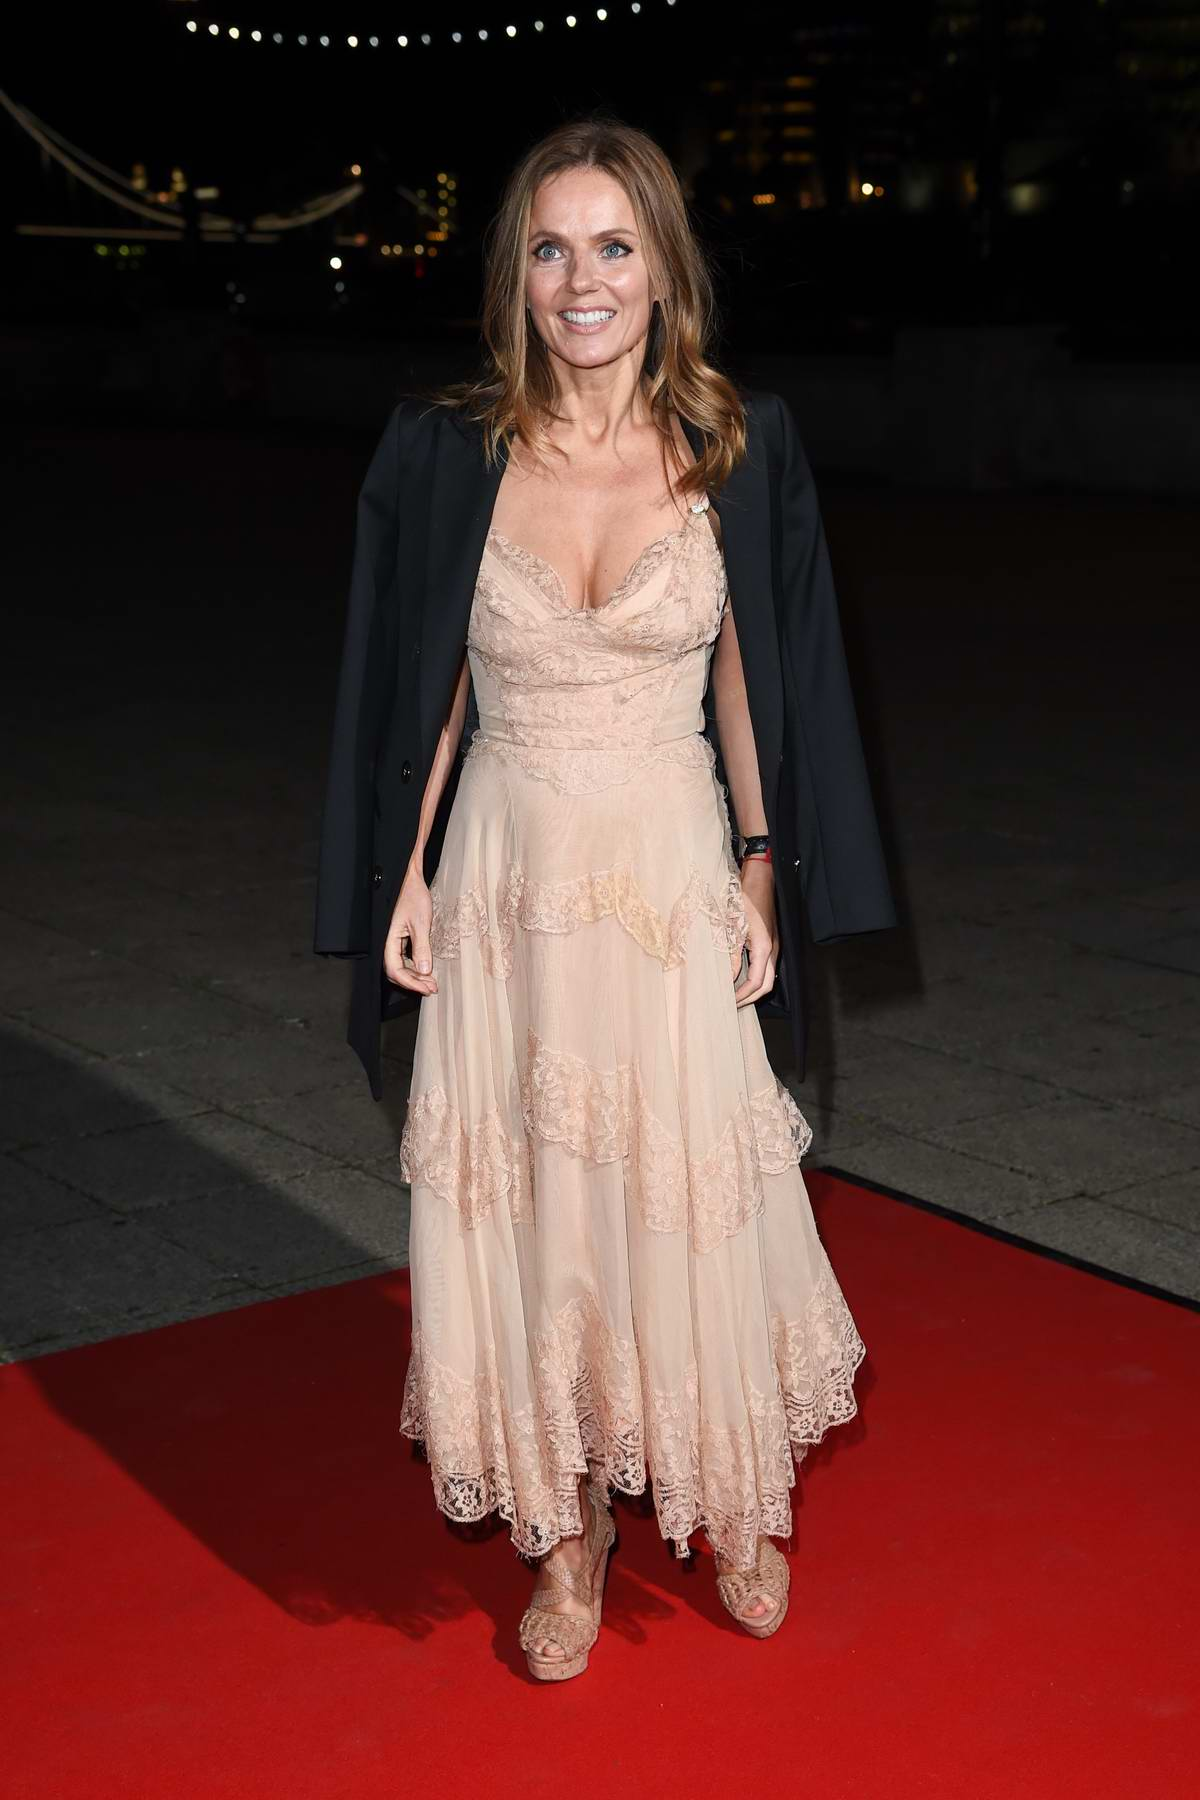 Geri Halliwell at Childline Ball 2017 in London